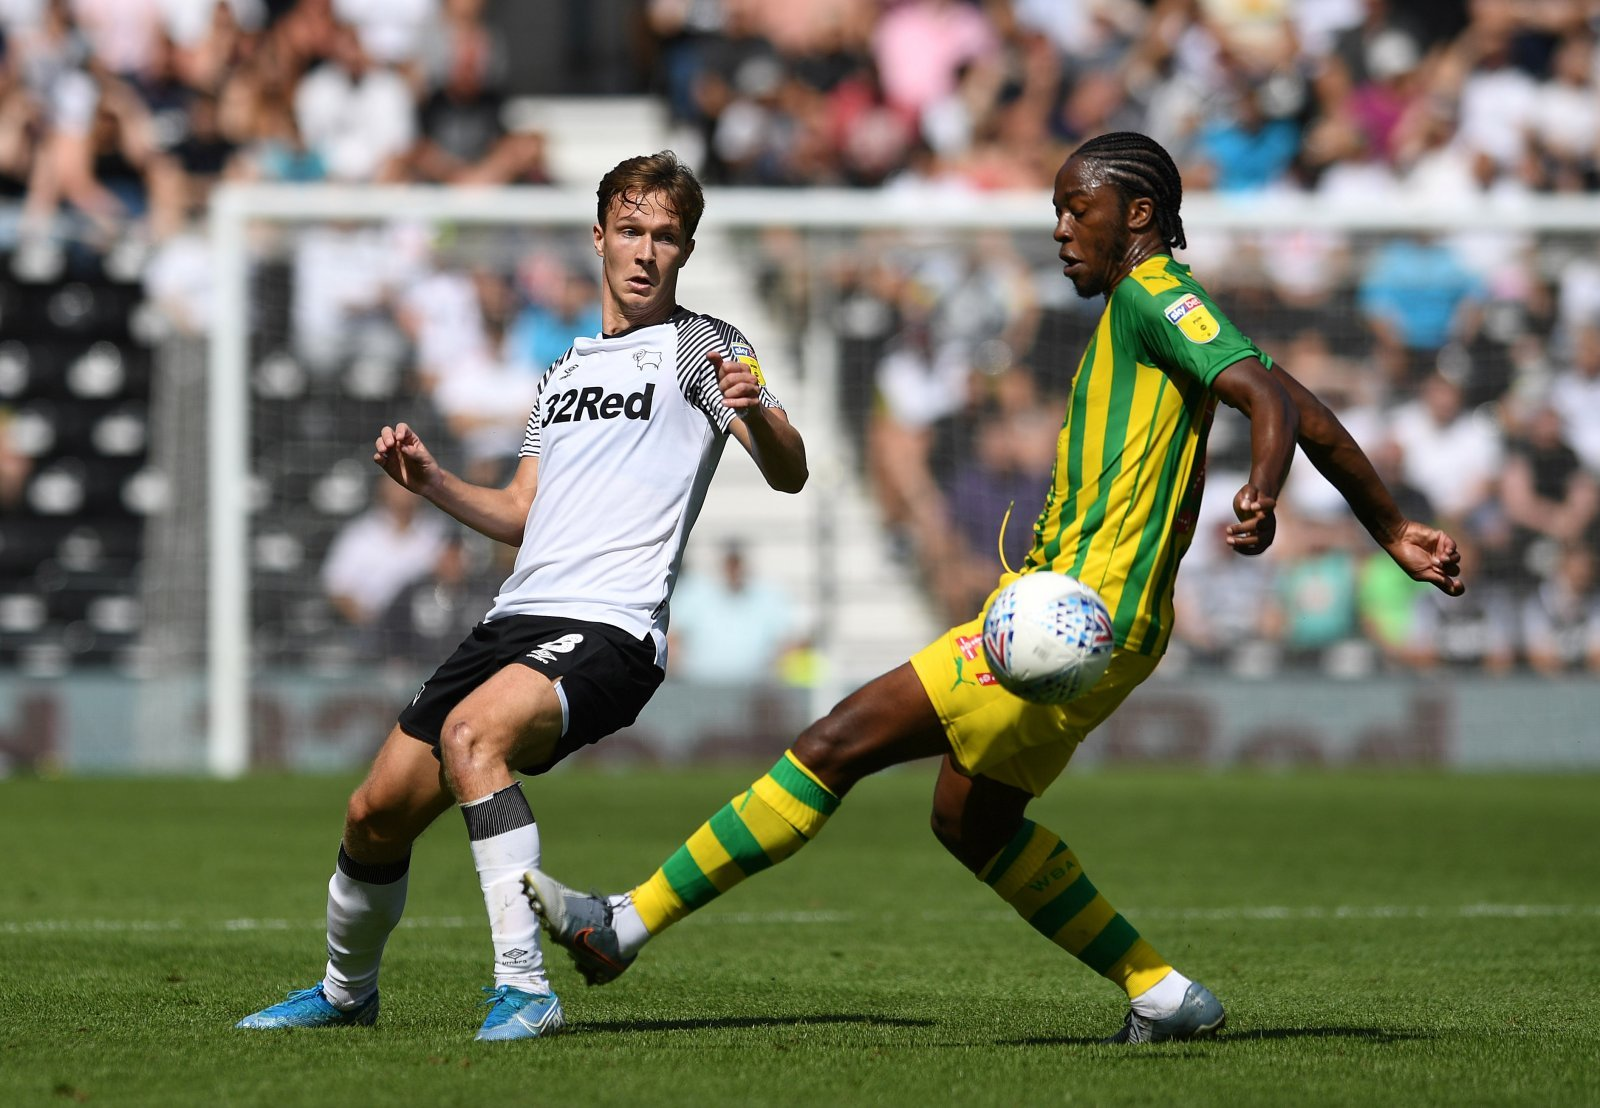 West Brom: Sawyers earns the plaudits after another top display